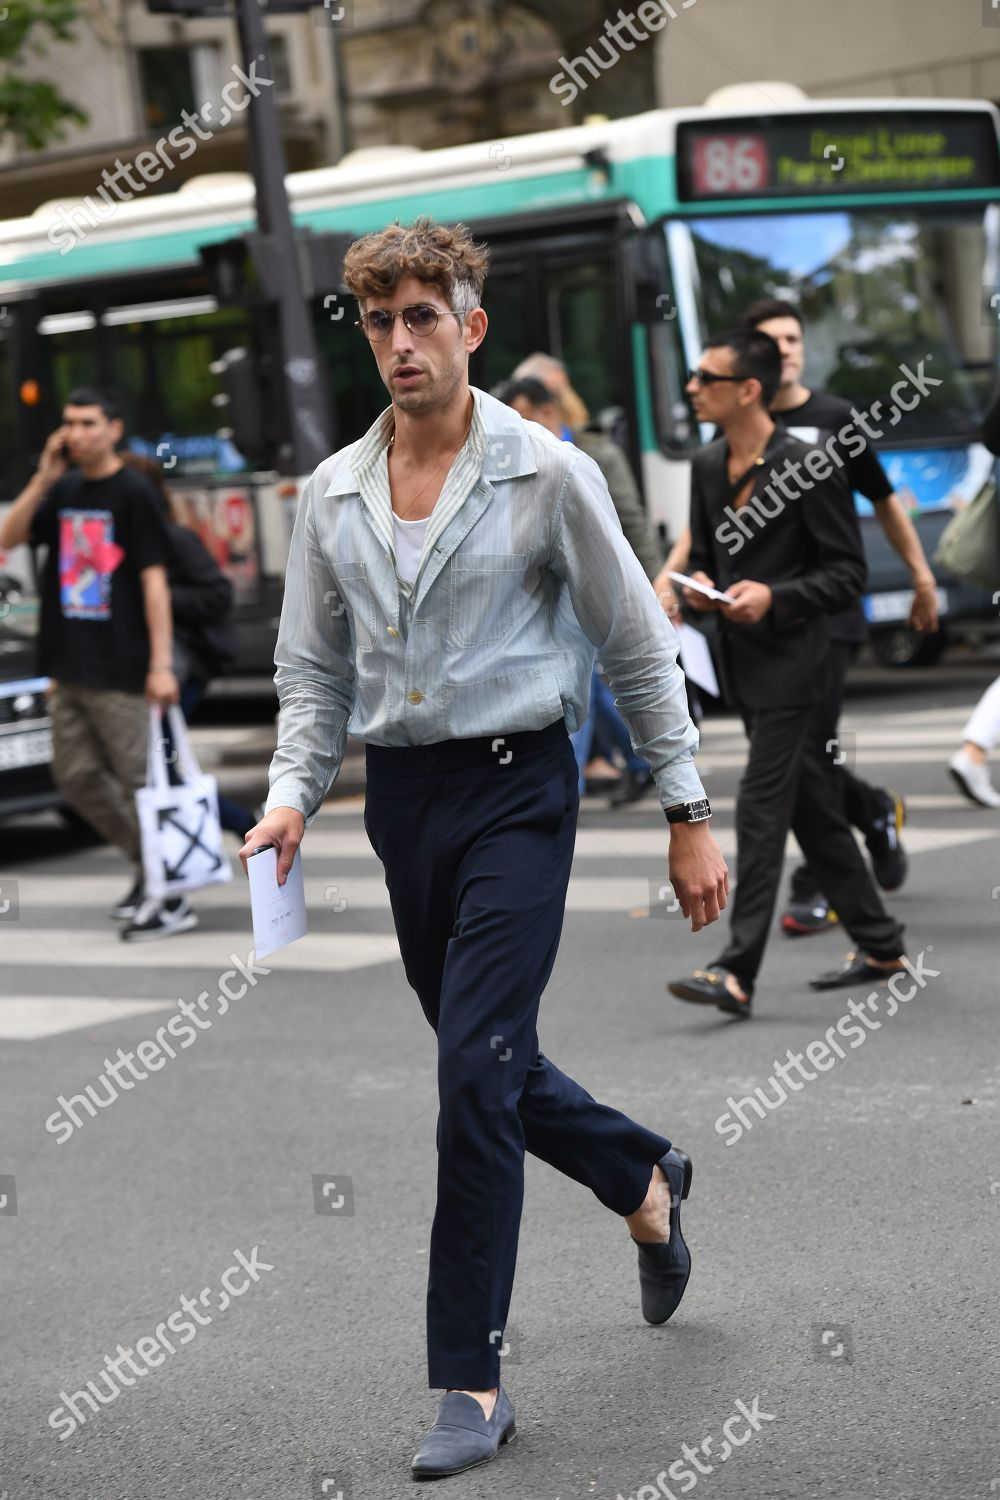 Urban Fashion 2020.Street Style Editorial Stock Photo Stock Image Shutterstock